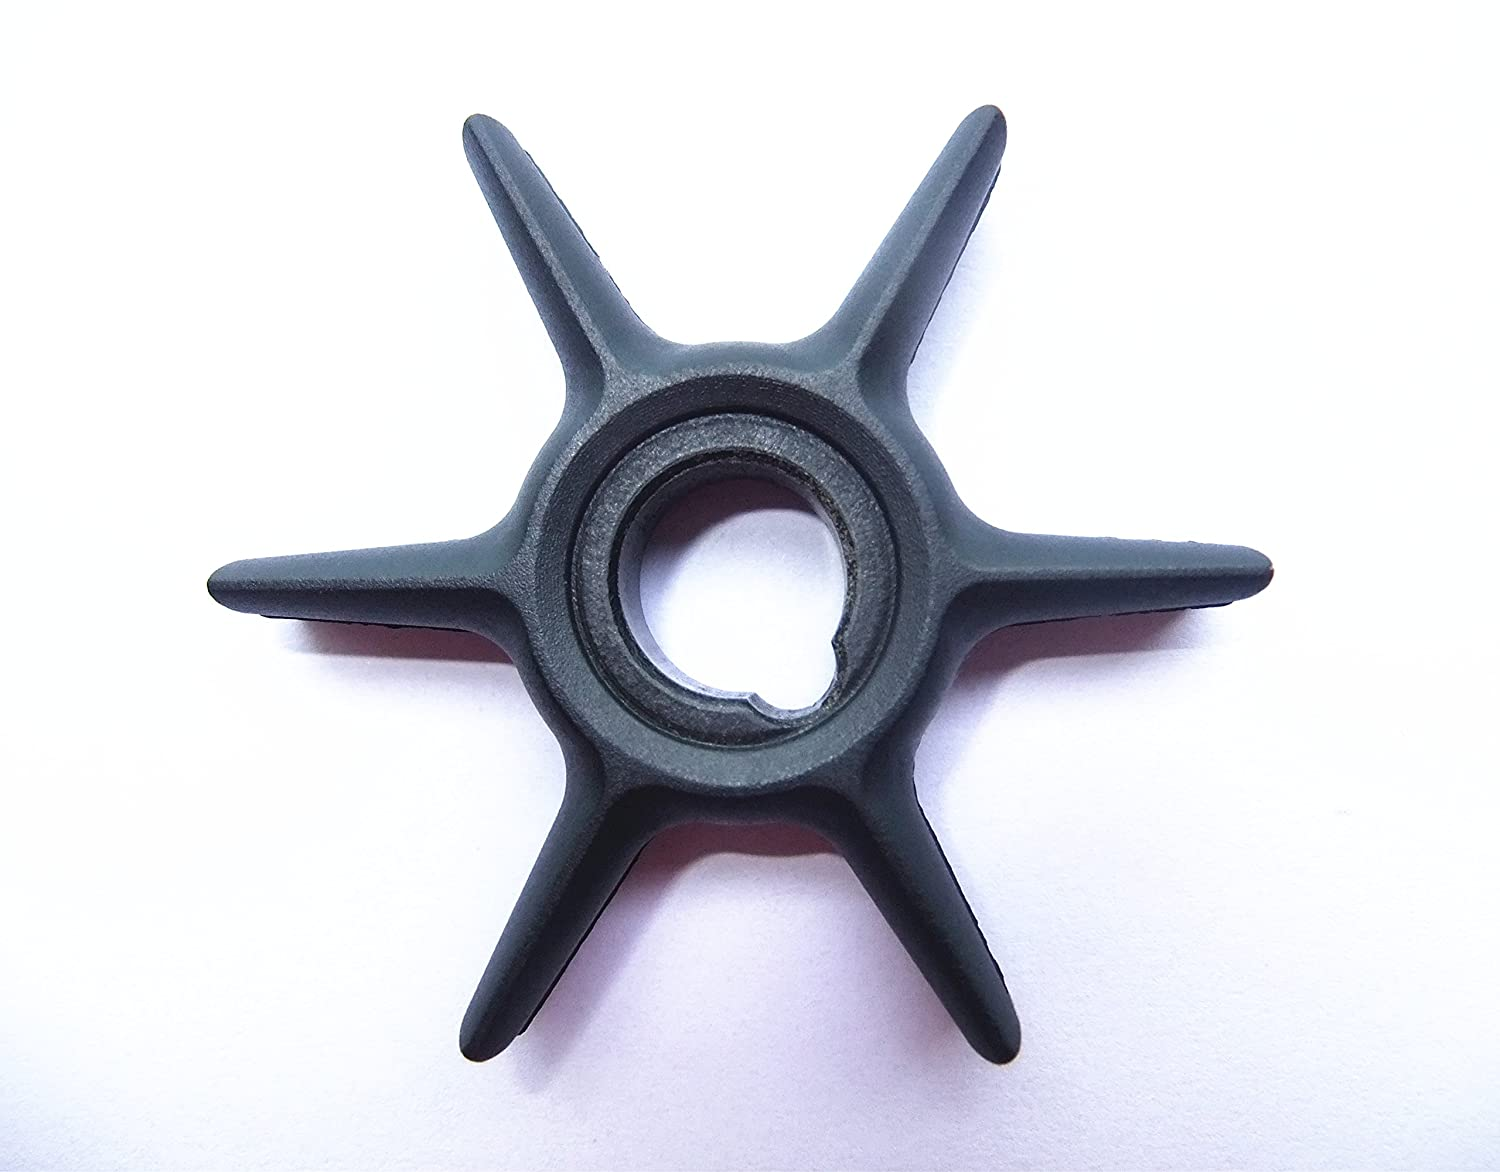 47-42038 47-42038-2 47-42038Q02 18-3062 Boat motor impeller for mercury mariner 6HP 8HP 9.9HP 15HP outboard motor parts